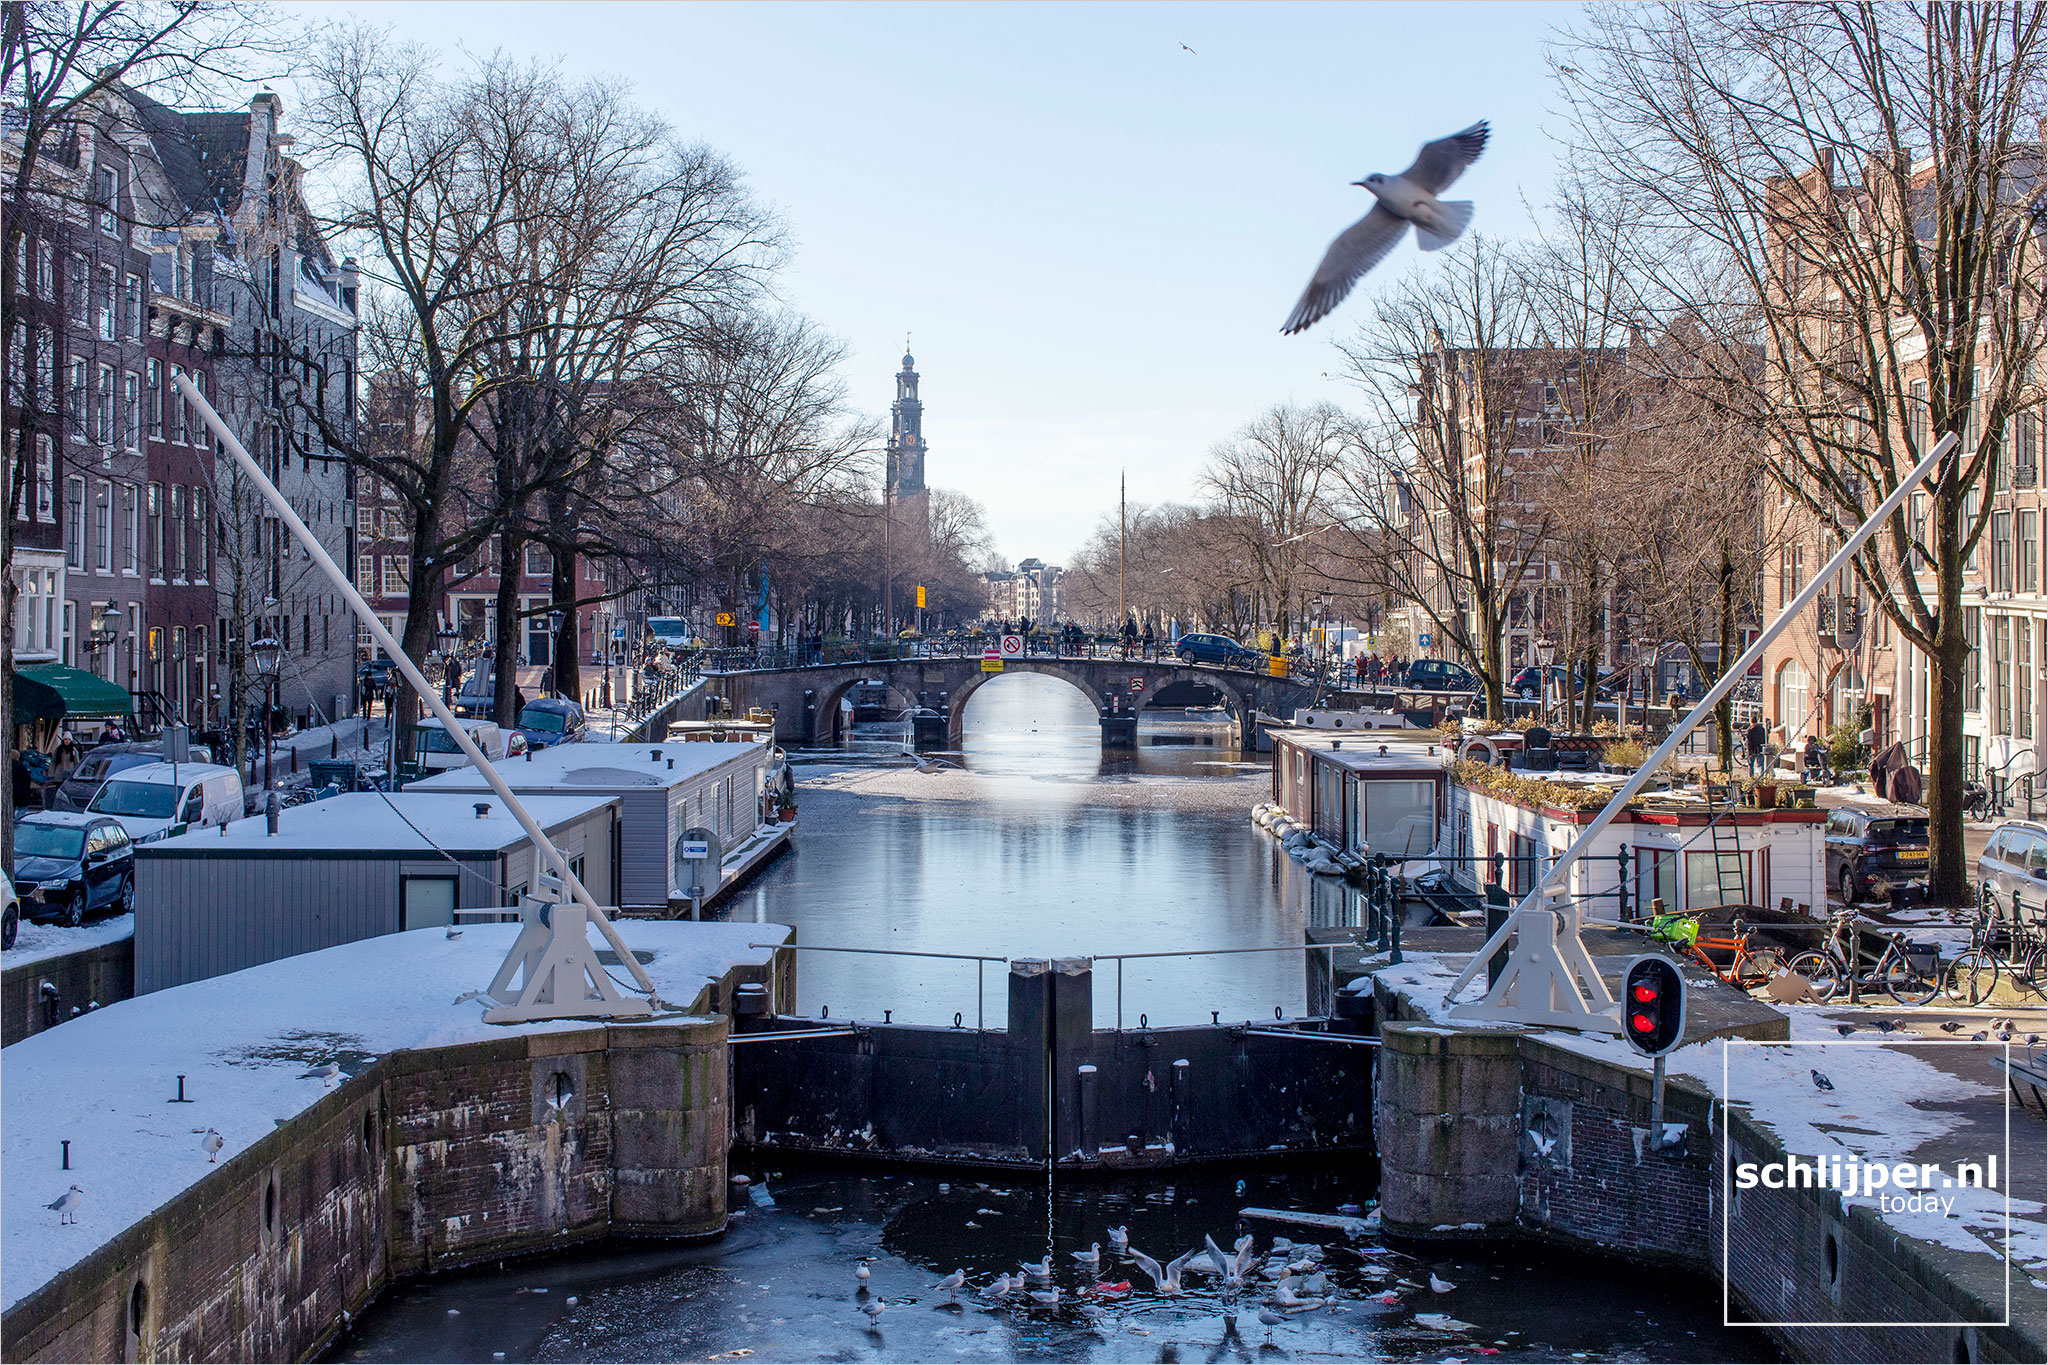 The Netherlands, Amsterdam, 1 januari 2021